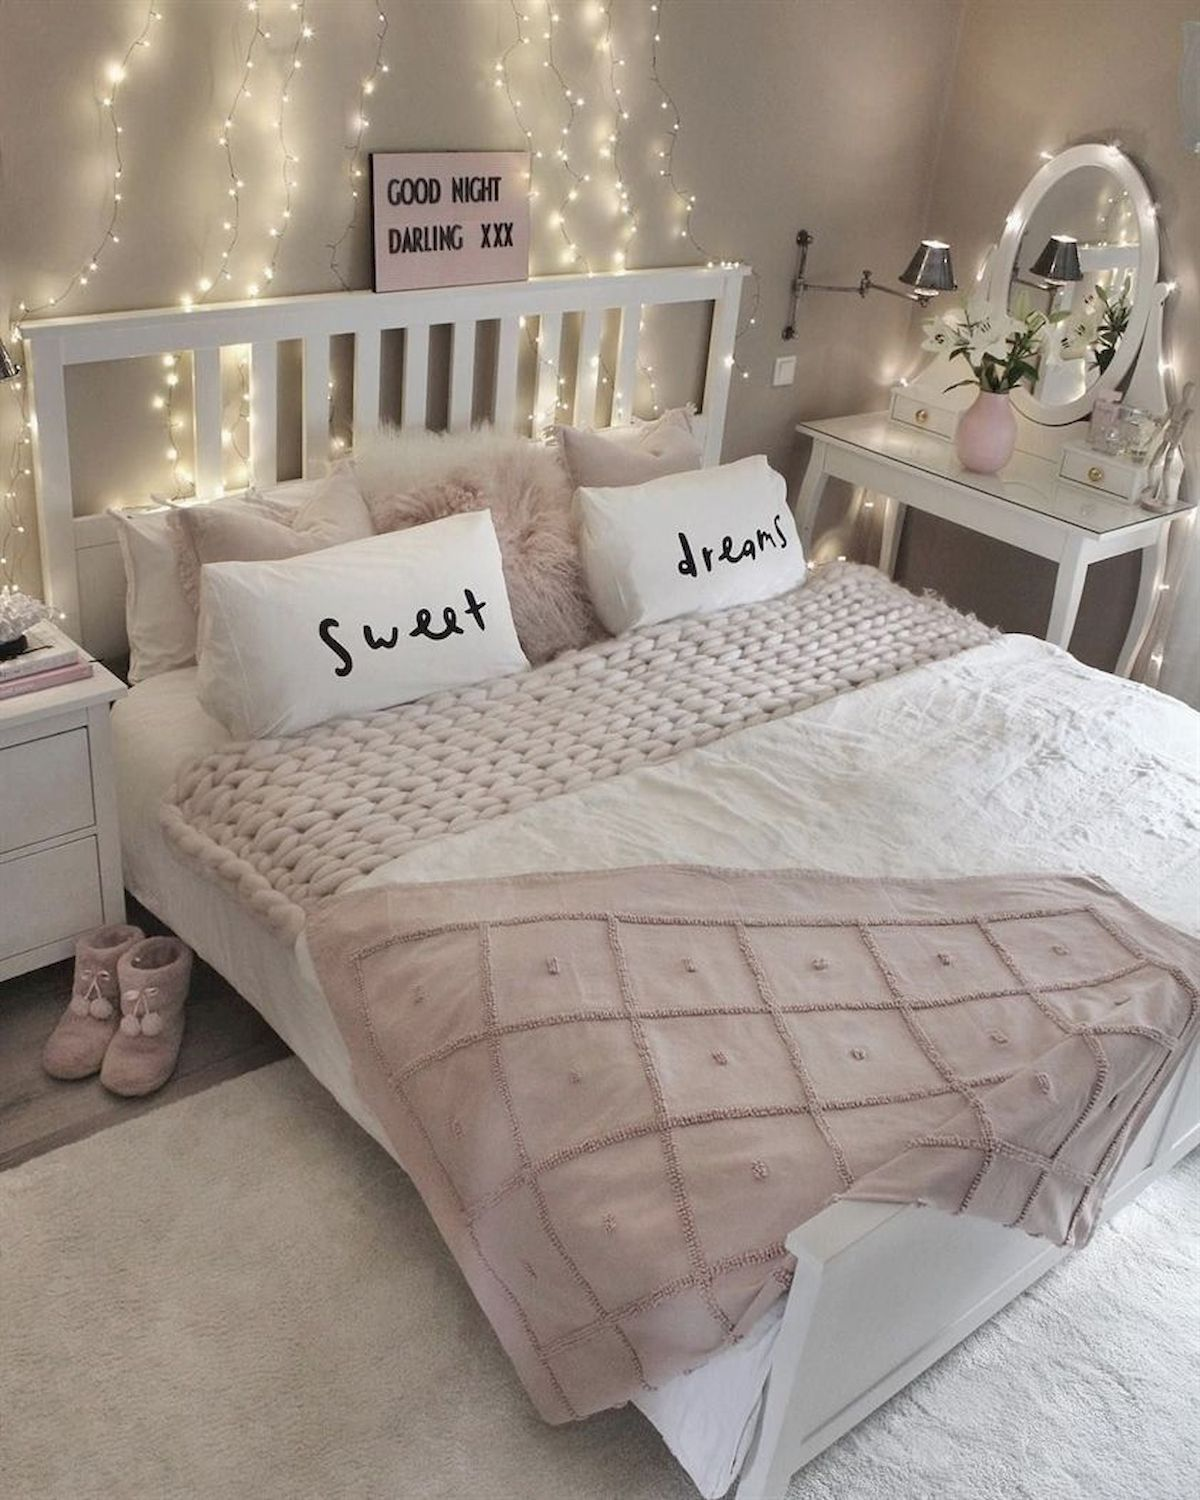 30 Mind Blowing Small Bedroom Decorating Ideas: 44 Awesome Teenage Bedroom Design Ideas